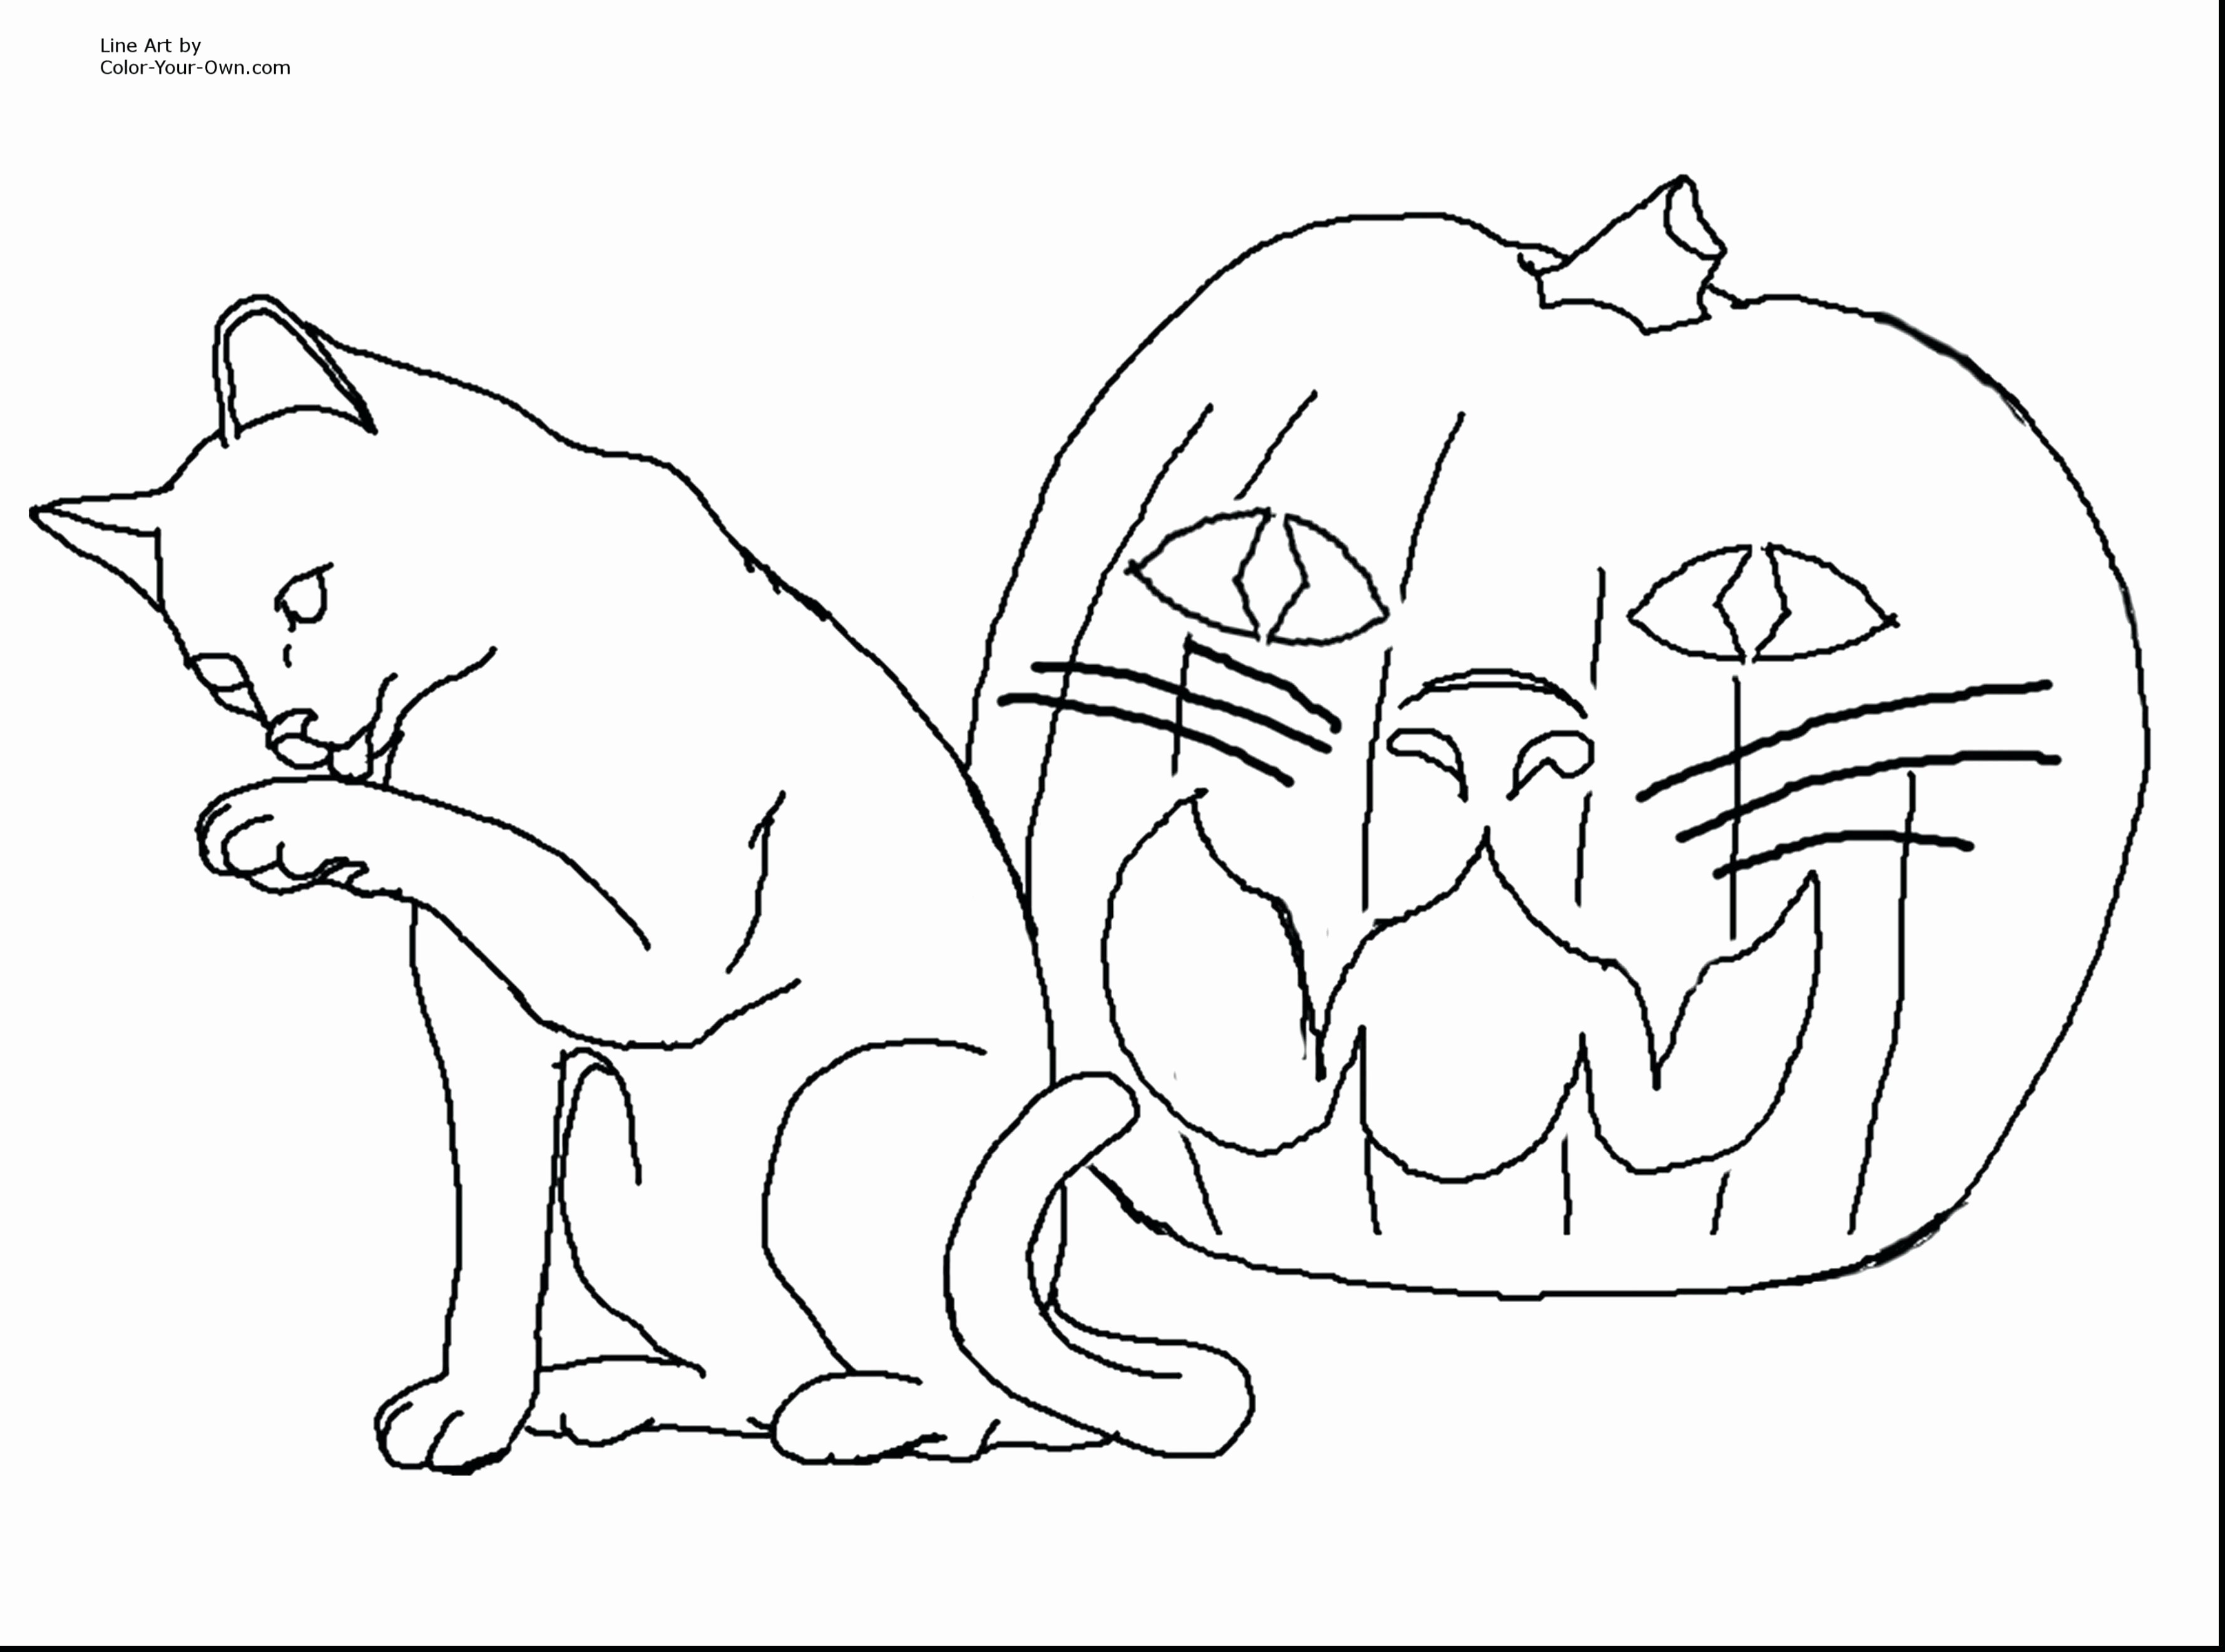 preschoolers coloring pages Download-Coloring Pages Animals preschool Color Pages Animals Luxury Drawing Printables 0d Archives Se 16-b